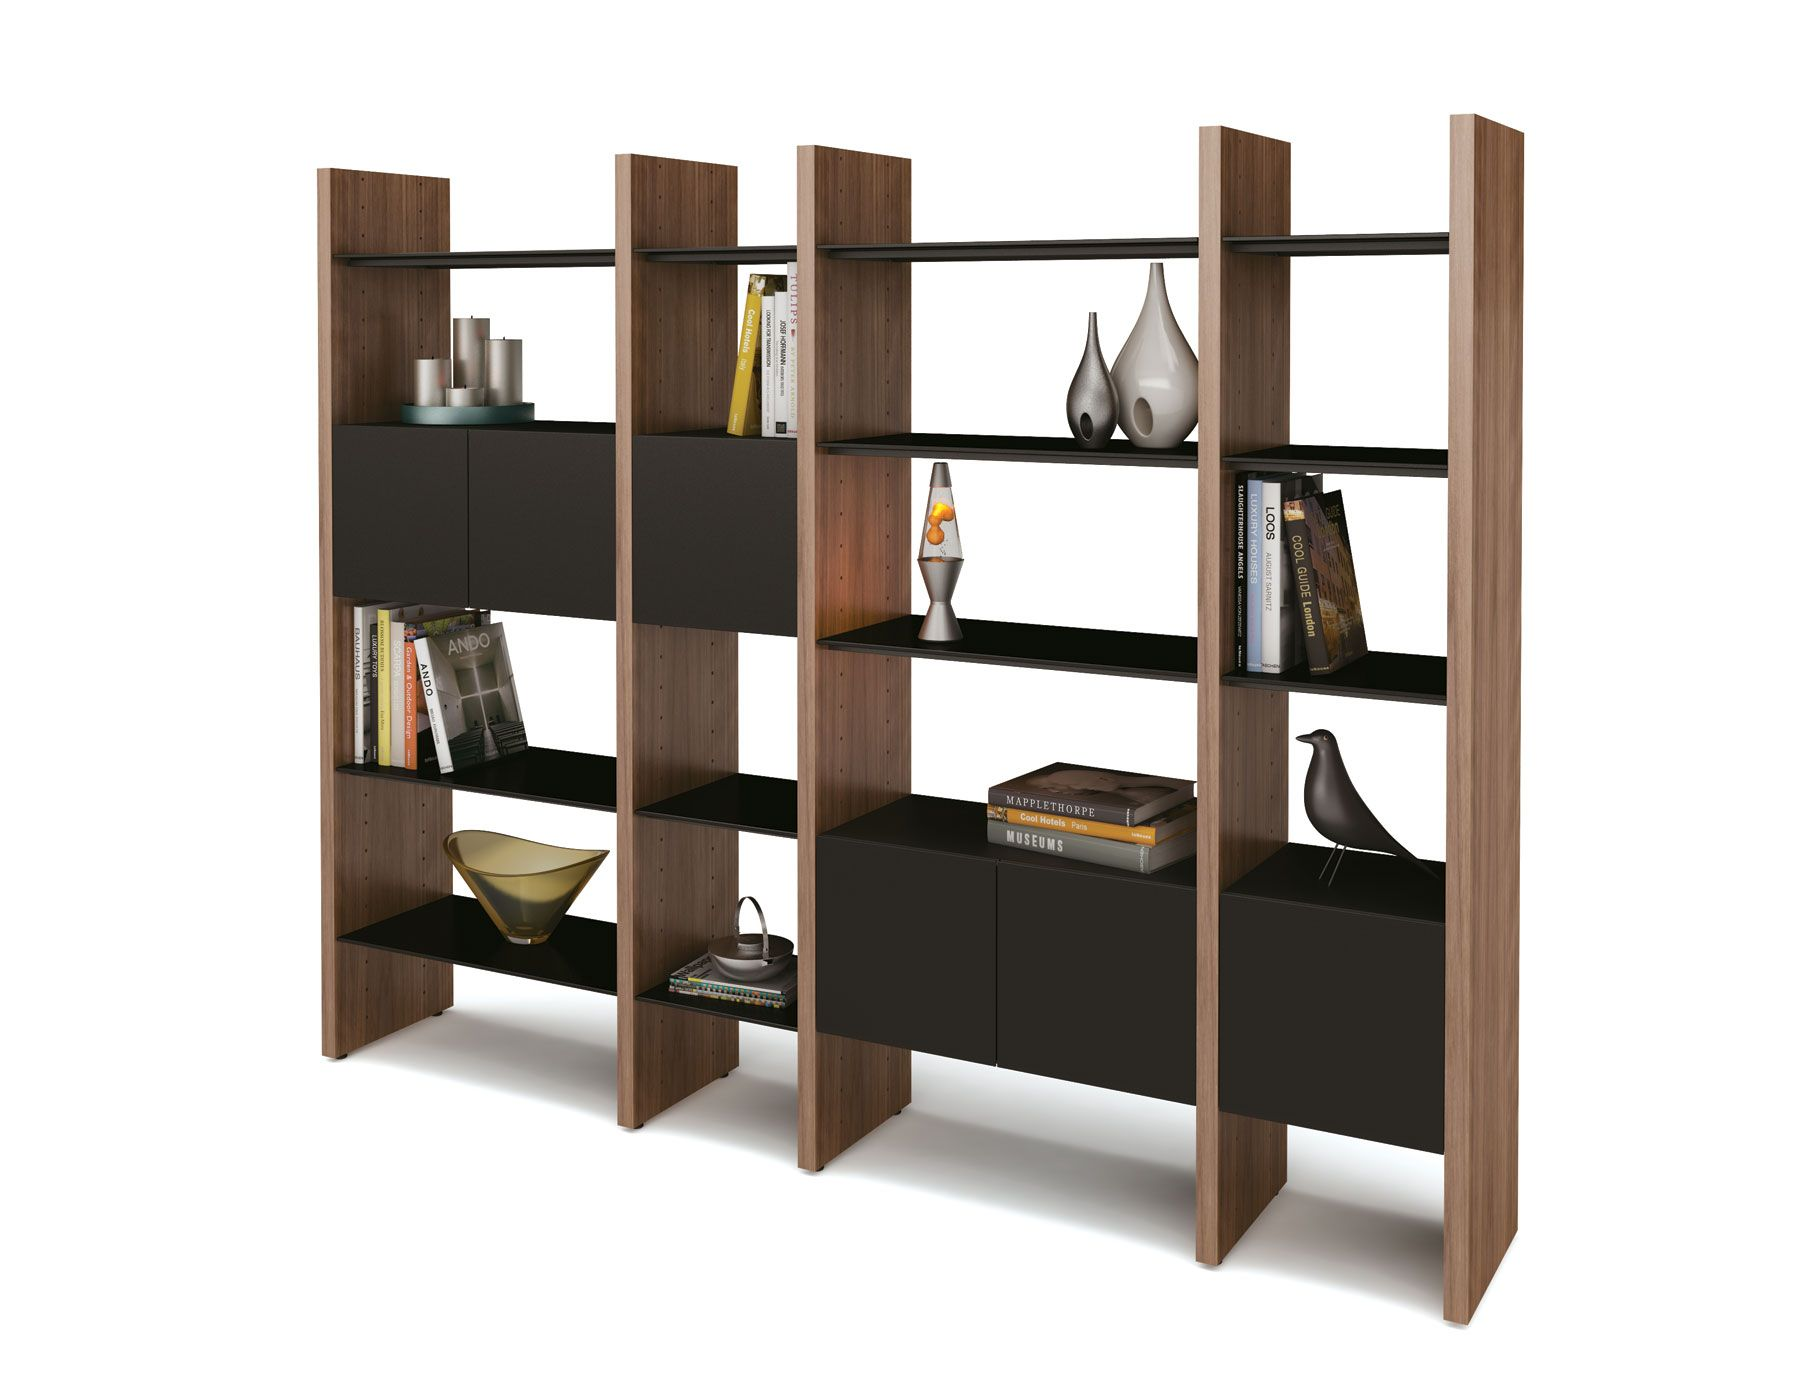 Marvelous Enchanting Wooden Modular Shelving Unit Design Idea With Walnut Wood Frames  And Black Wood Shelves And